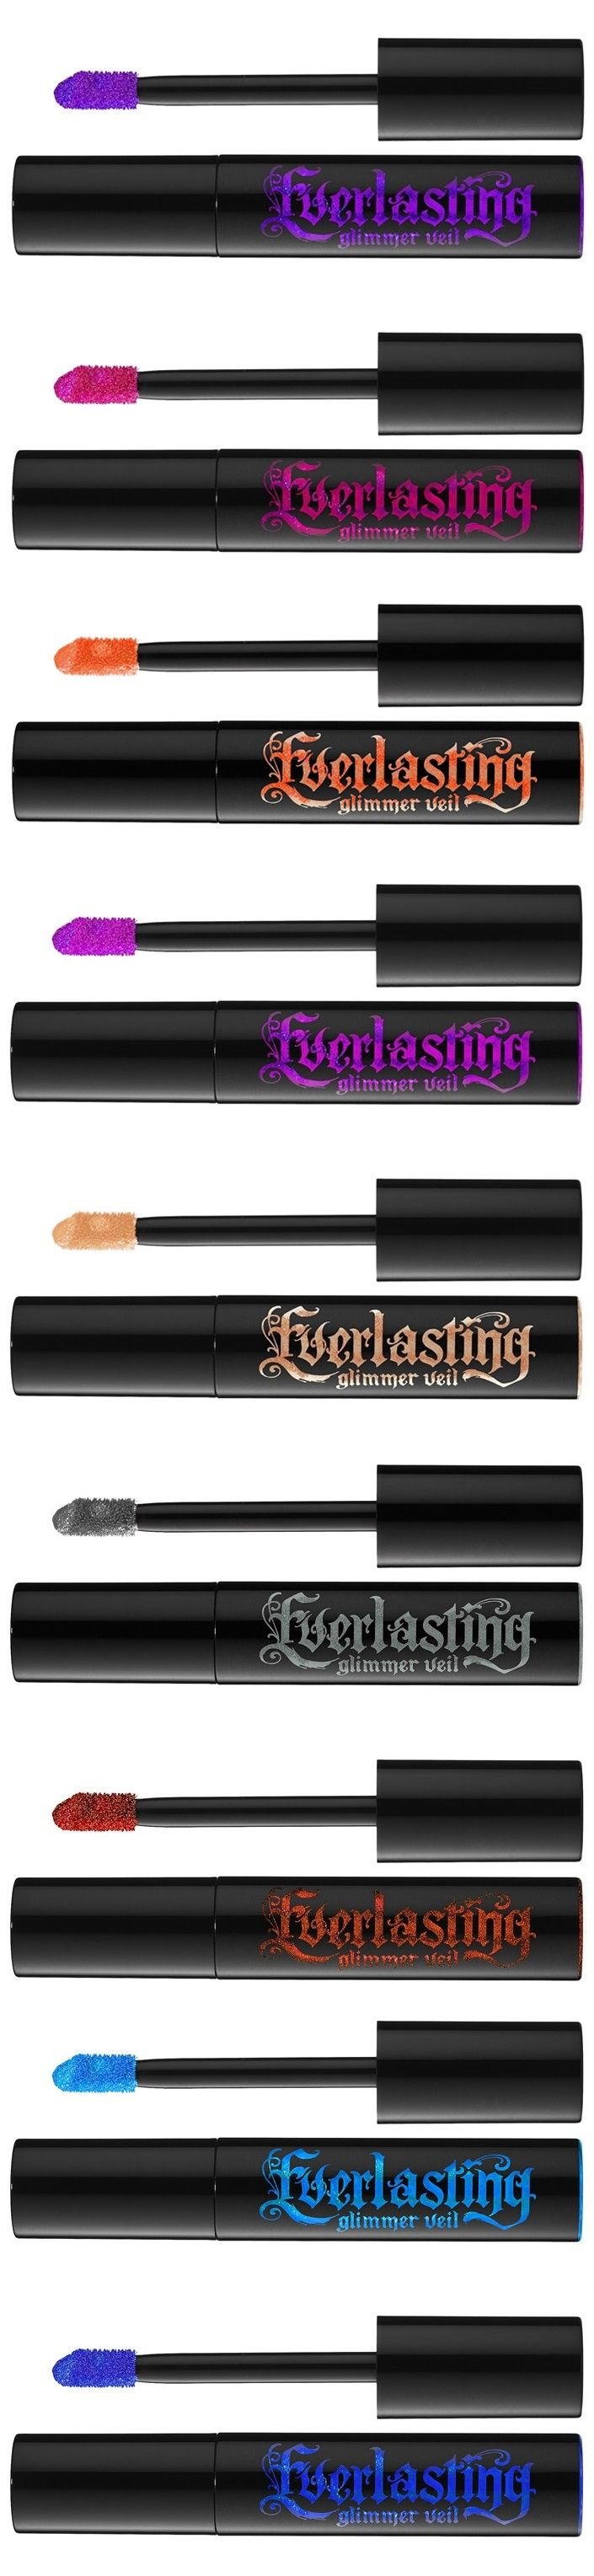 Kat Von D Everlasting Glimmer Veil Liquid Lipstick for Fall 2017 – Musings of a Muse